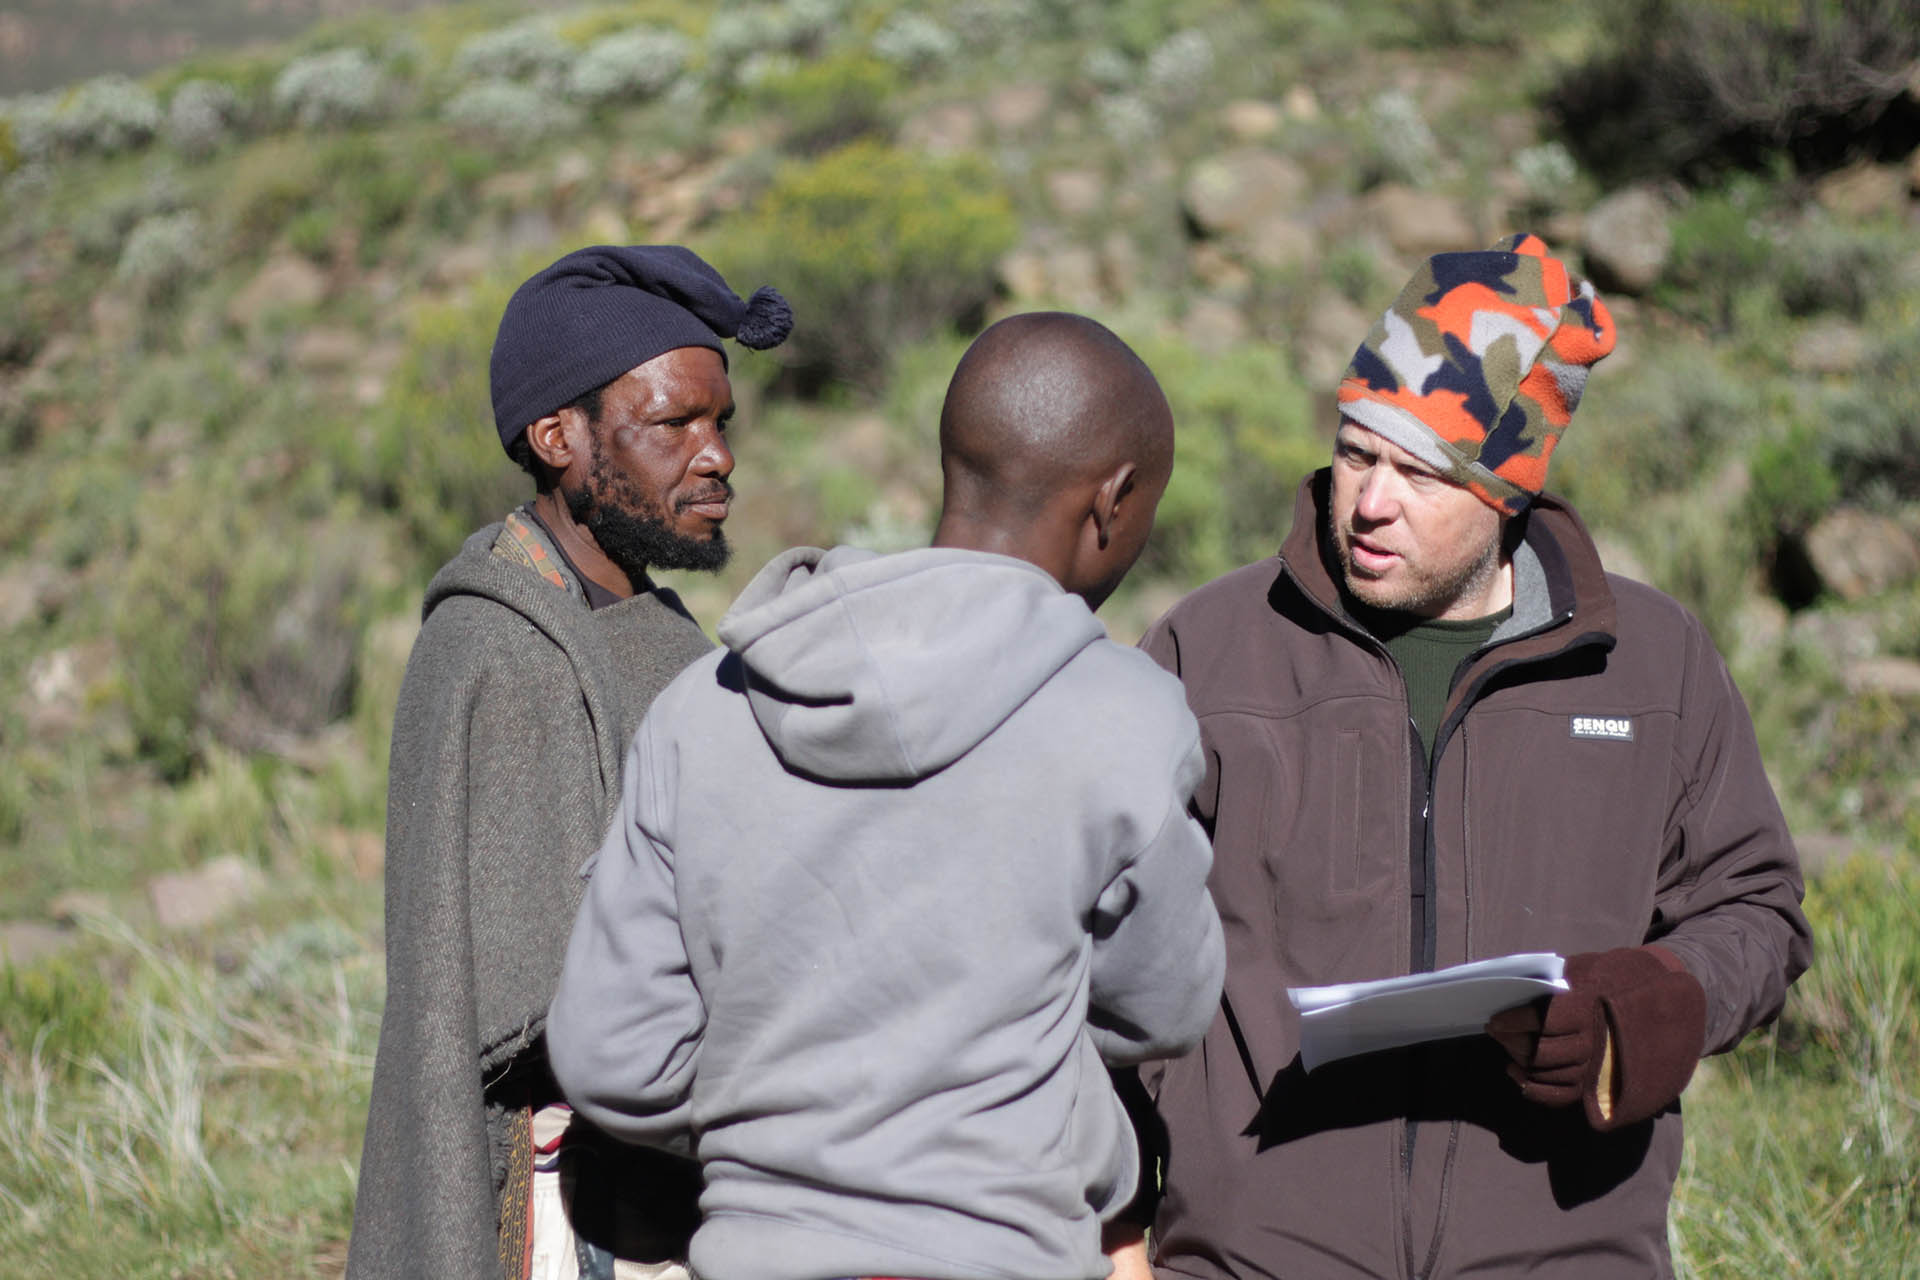 african-waters-team-deeply-committed-to-conservation-and-community-training-local-guides-mulateers-lesotho